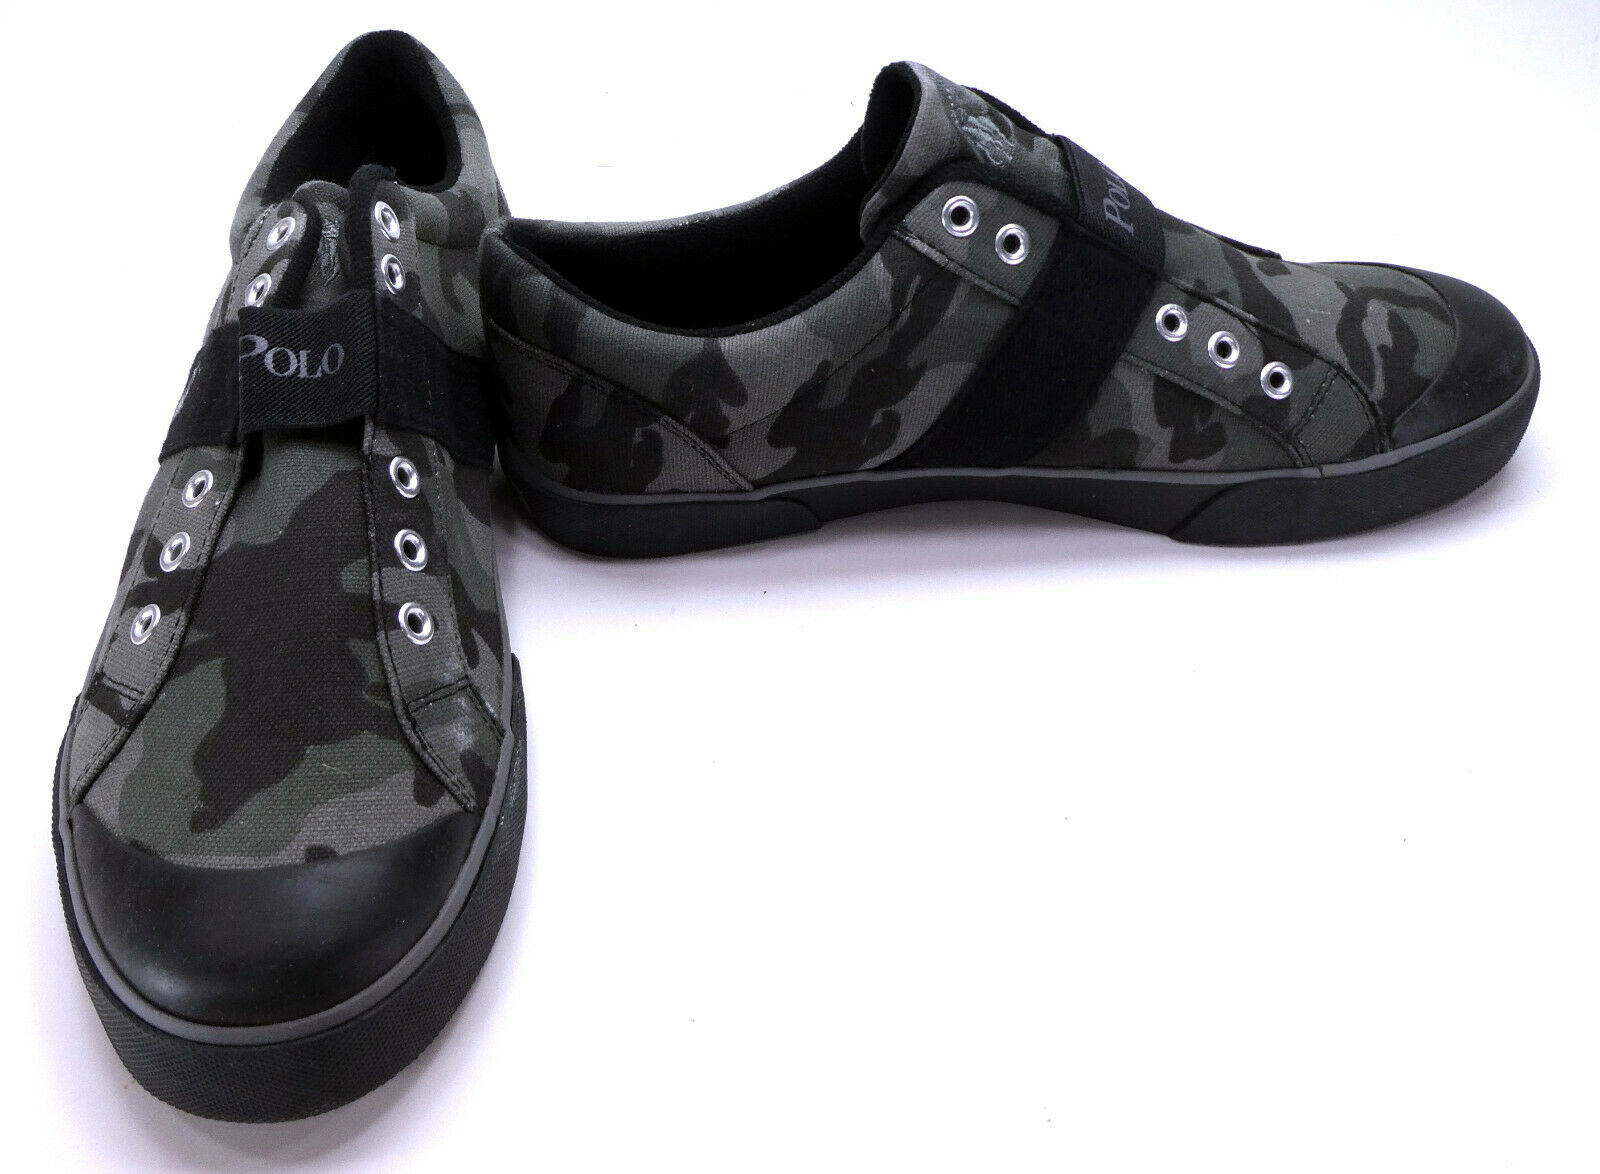 Polo Ralph Lauren shoes Gardener Military Olive Camouflage Sneakers Size 8